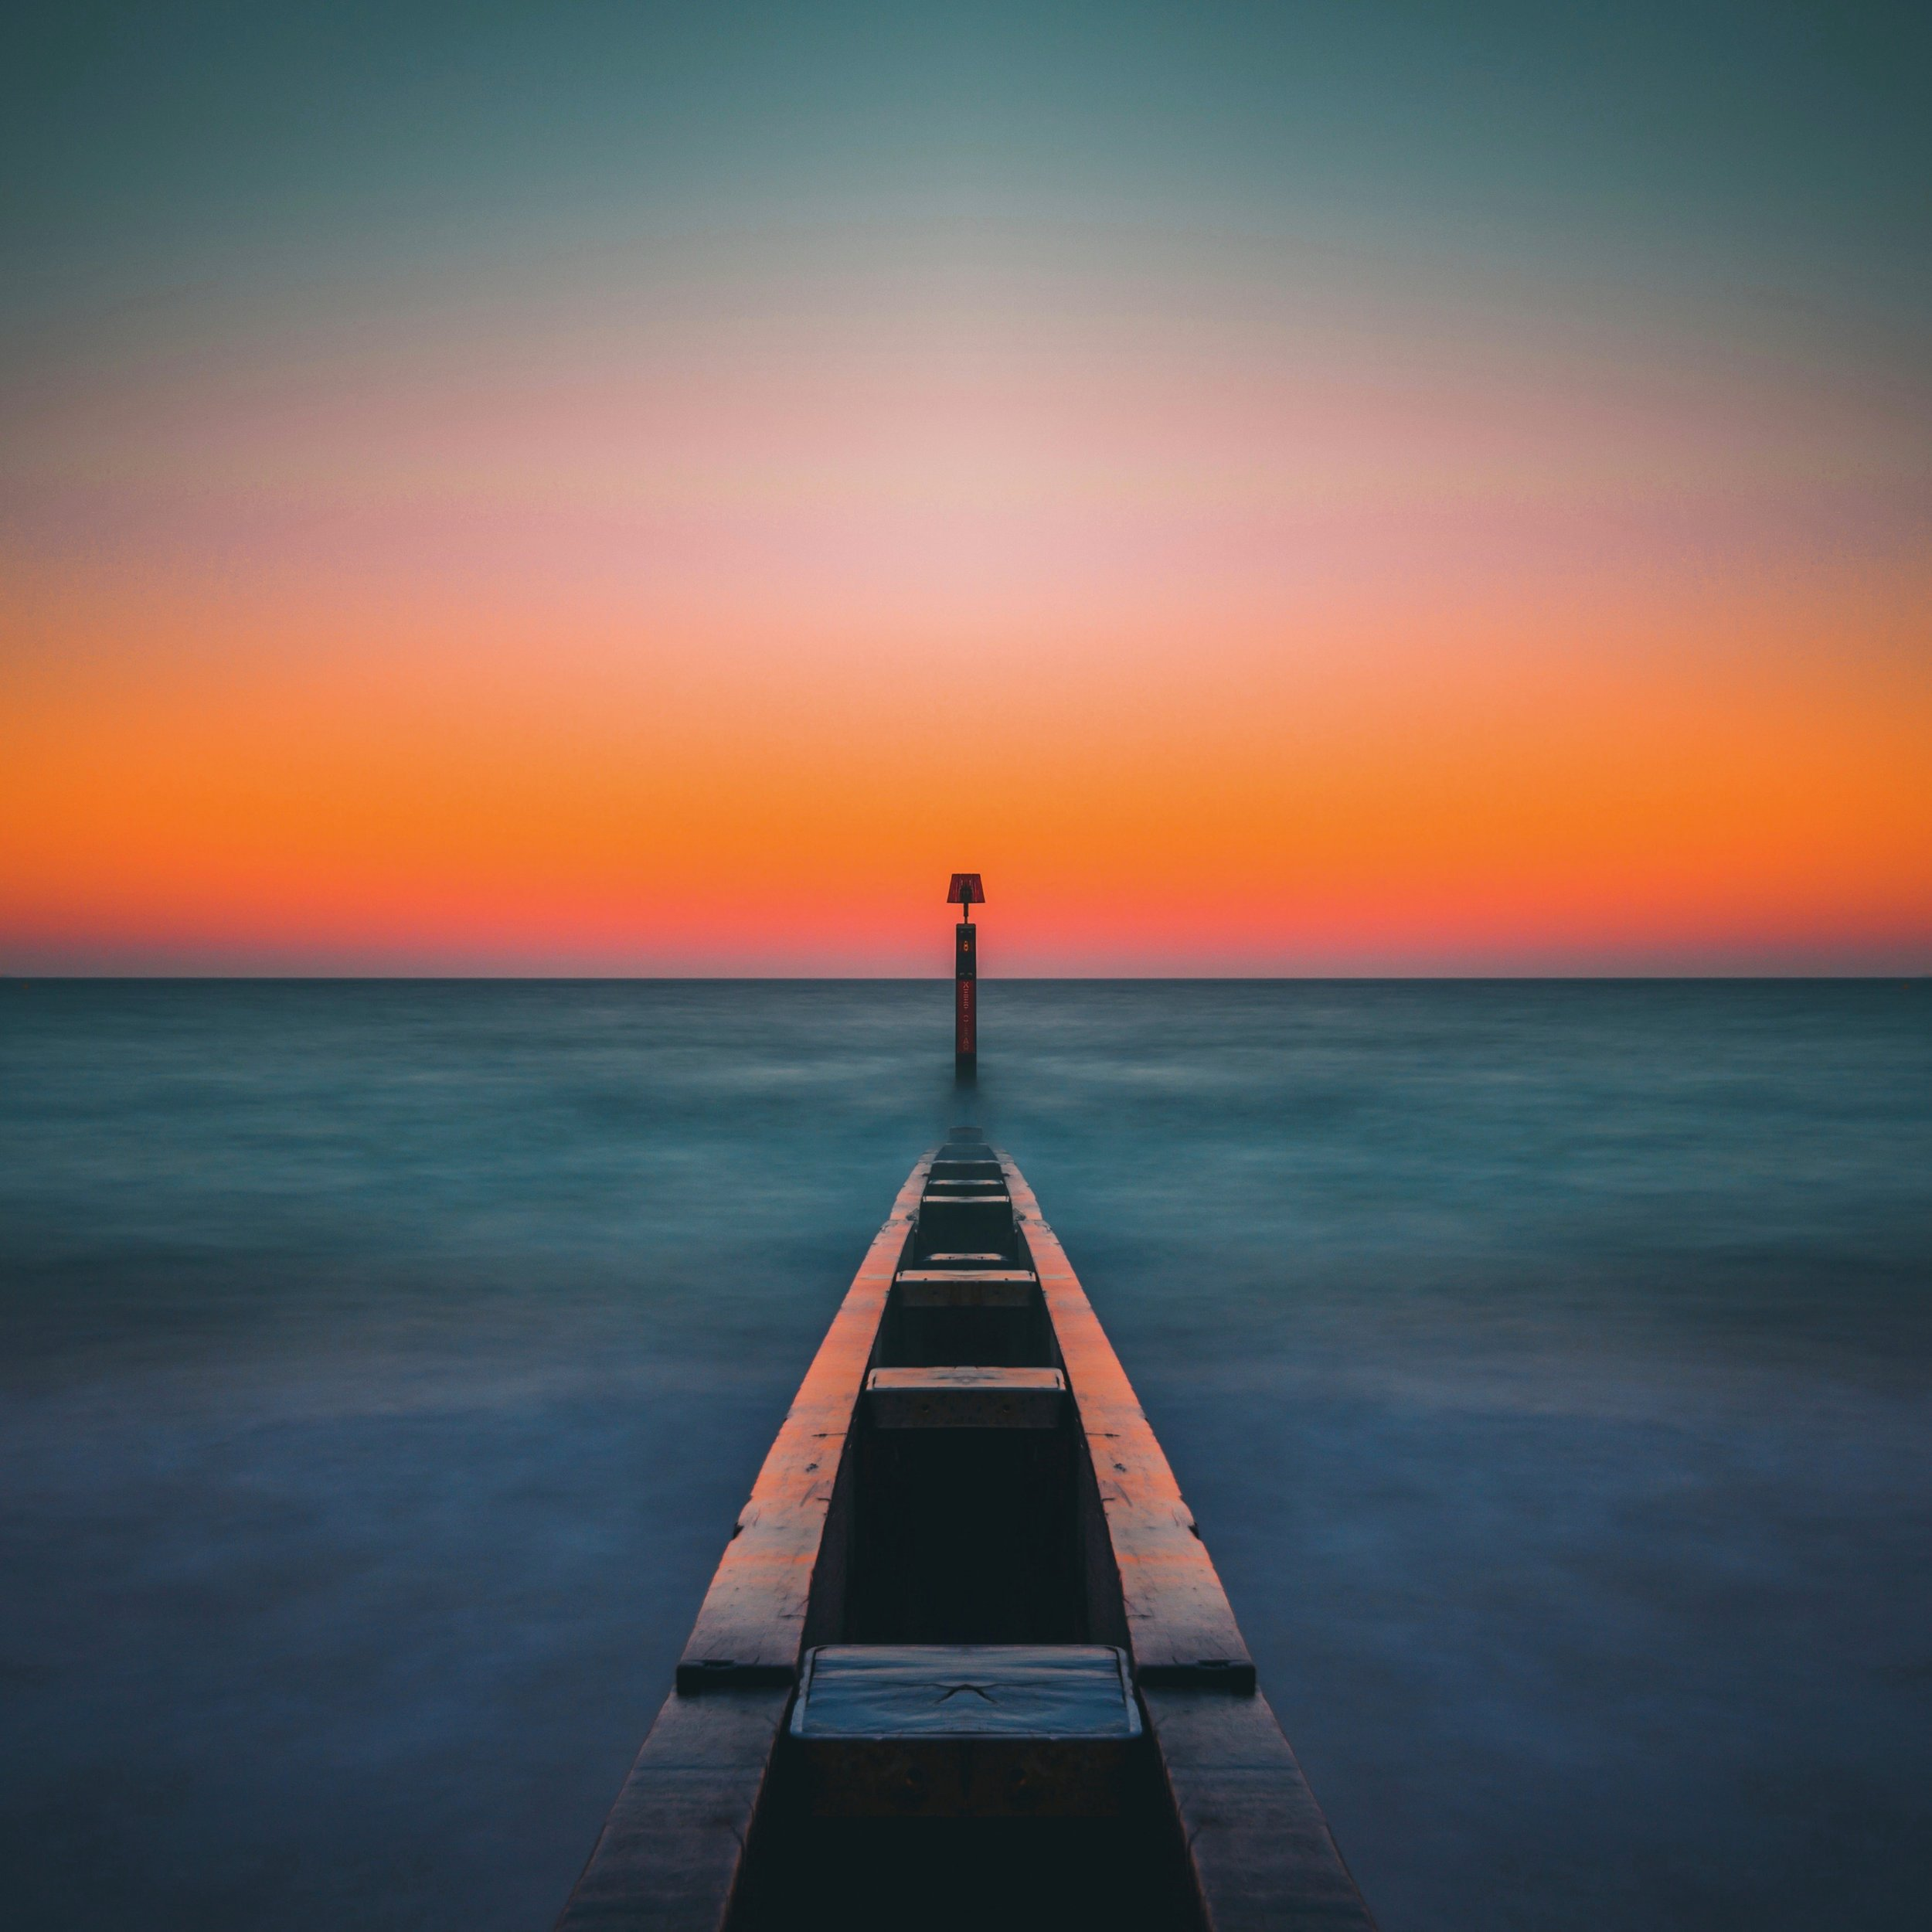 Photo by Zak Elley via Unsplash